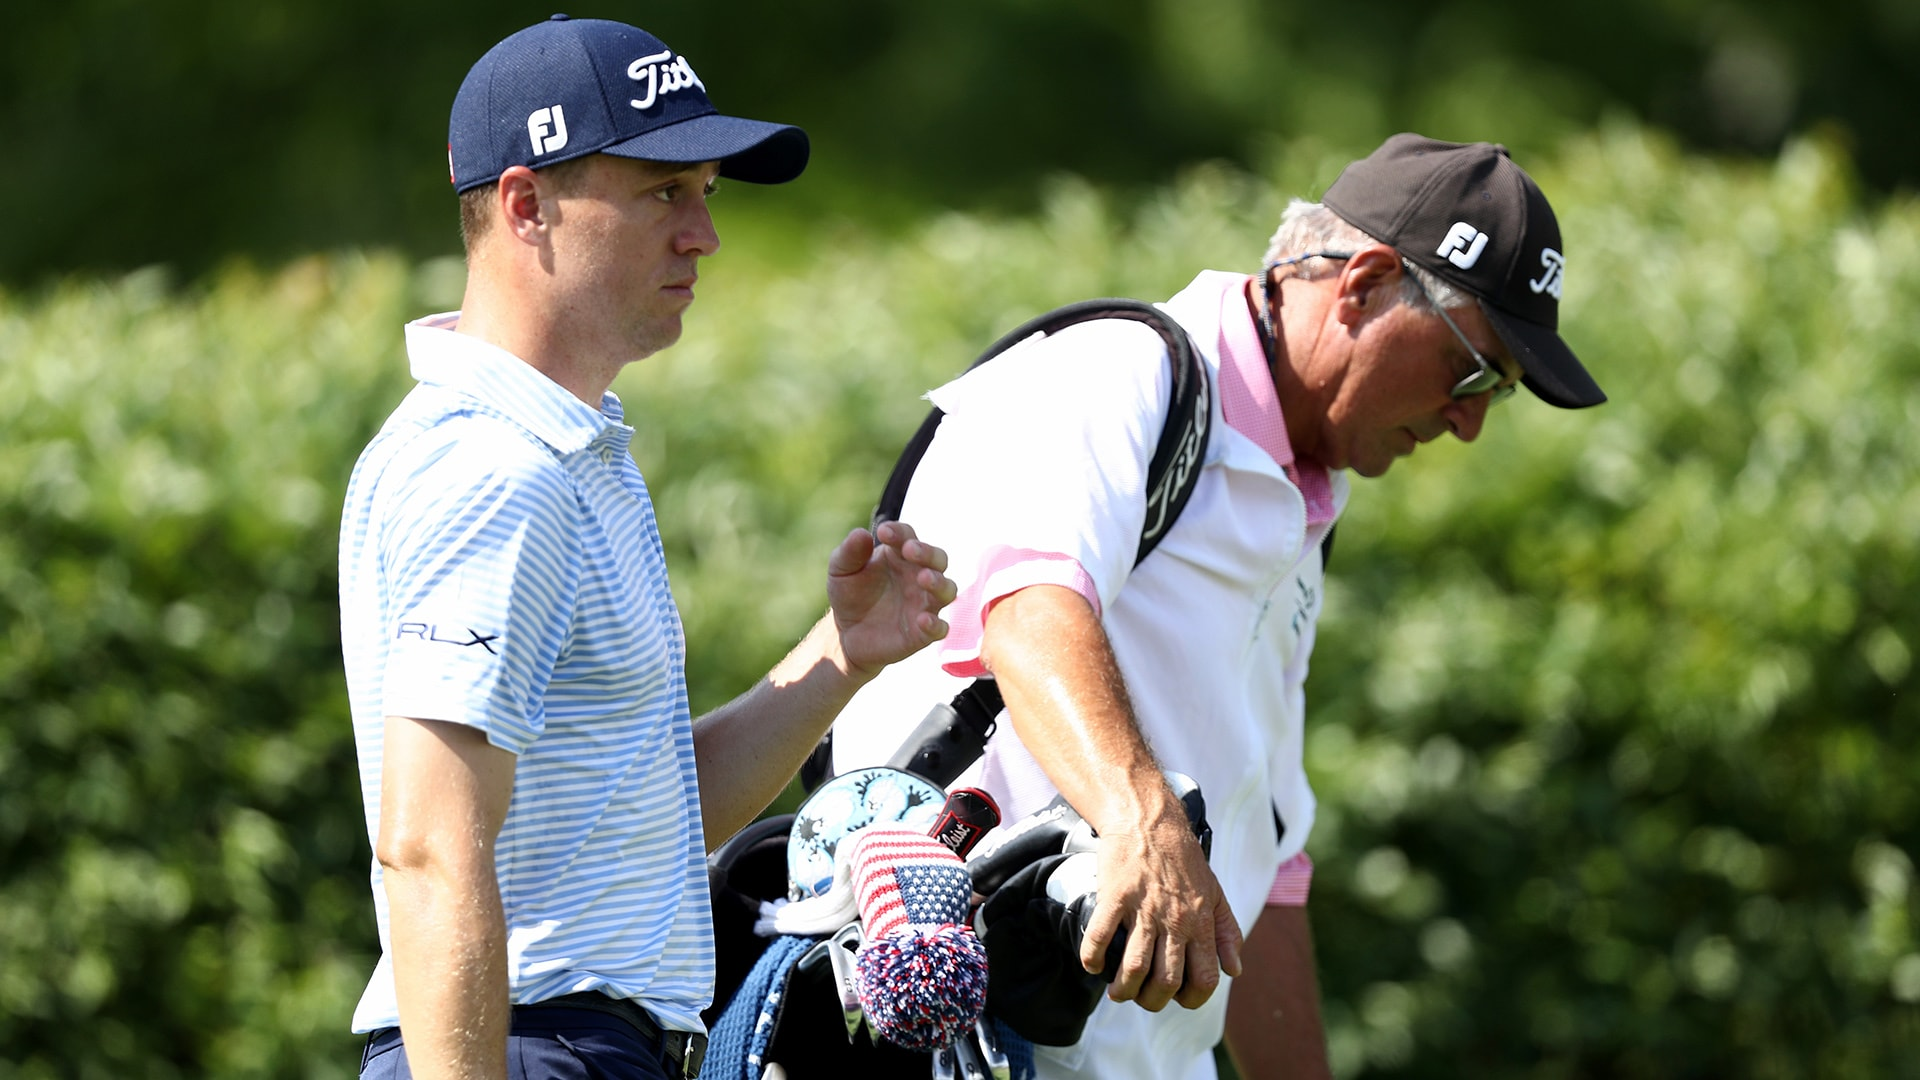 Mike Thomas Caddies For Son Justin Thomas After Regular Looper Leaves With Dizziness Golf Channel